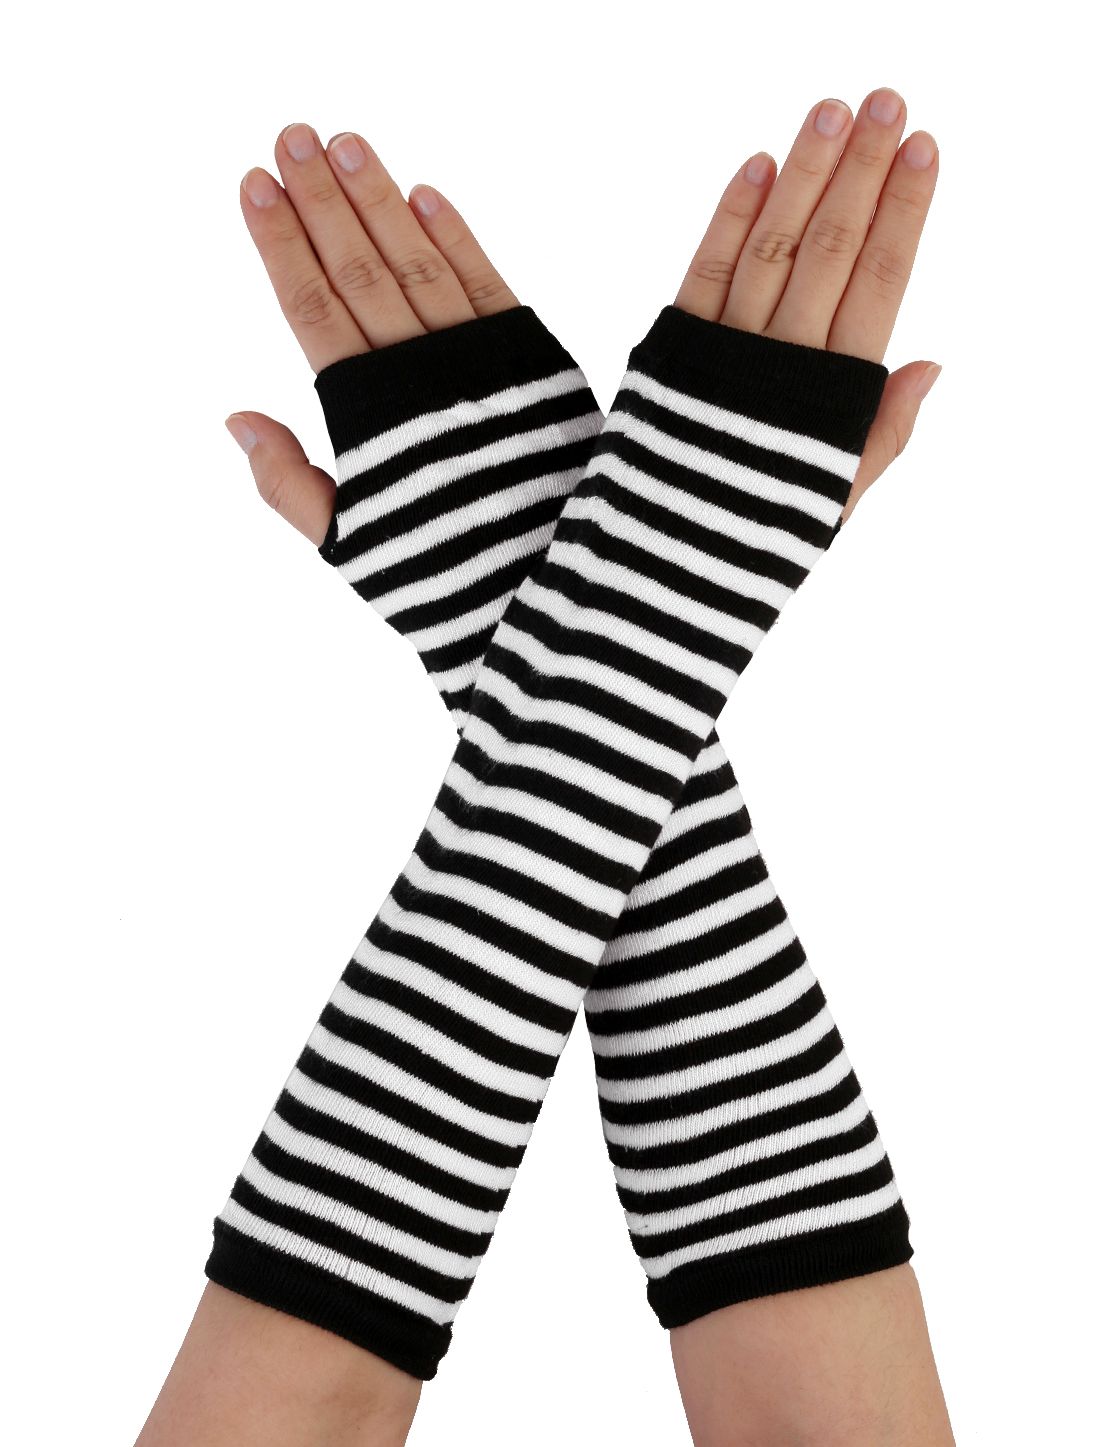 Stylish Winter Warm Black White Striped Long Fingerless Gloves